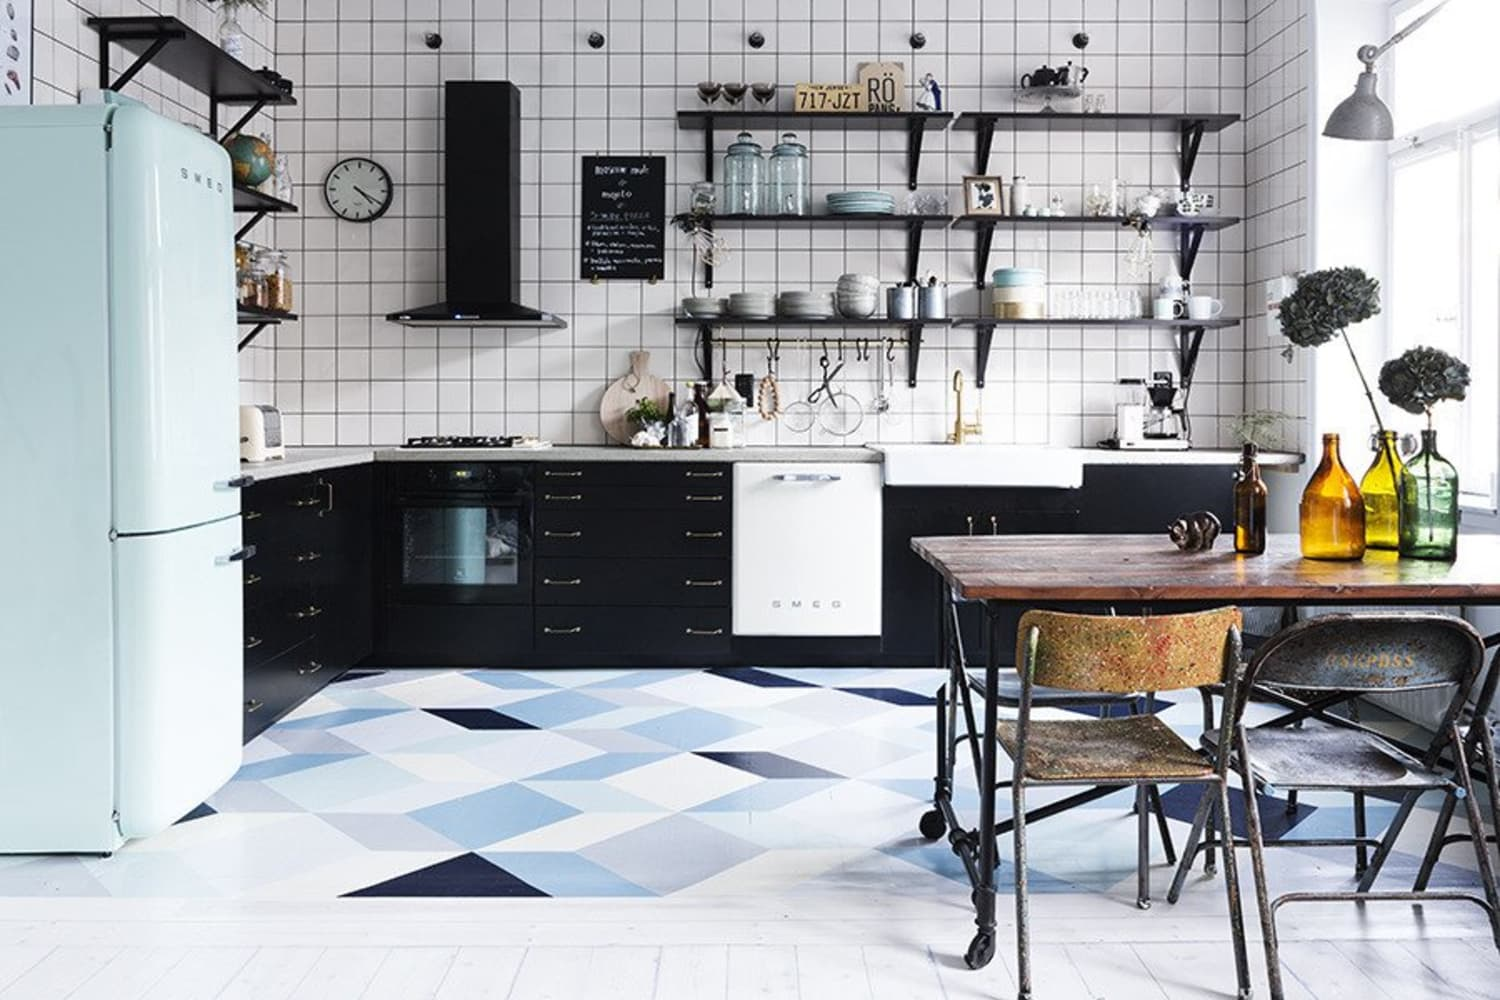 The World's Most Beautiful Kitchen Floors